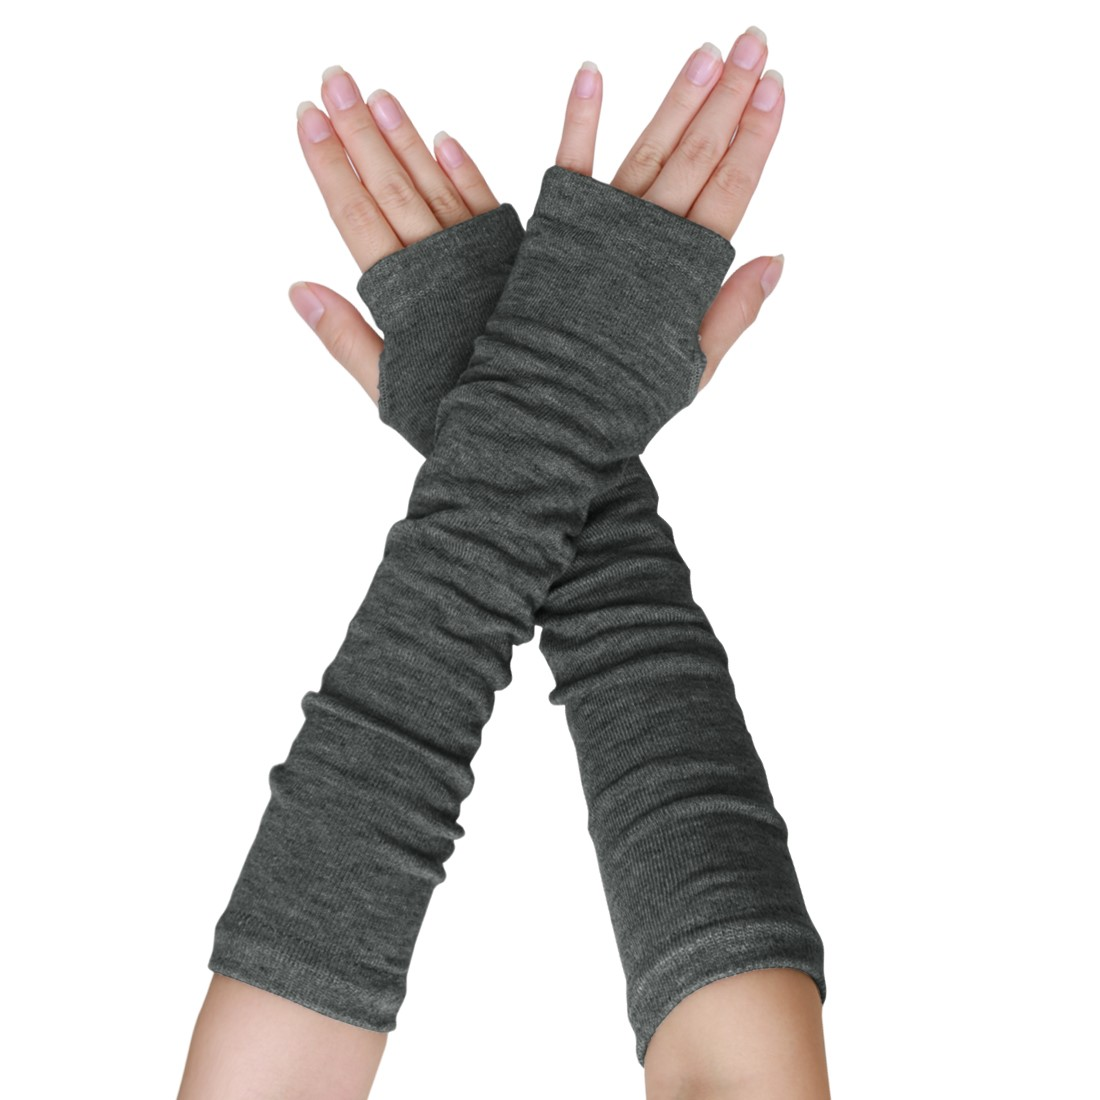 Unique Bargains Women's Elbow Length Thumbhole Arm Warmer Fingerless Gloves Pair Gray